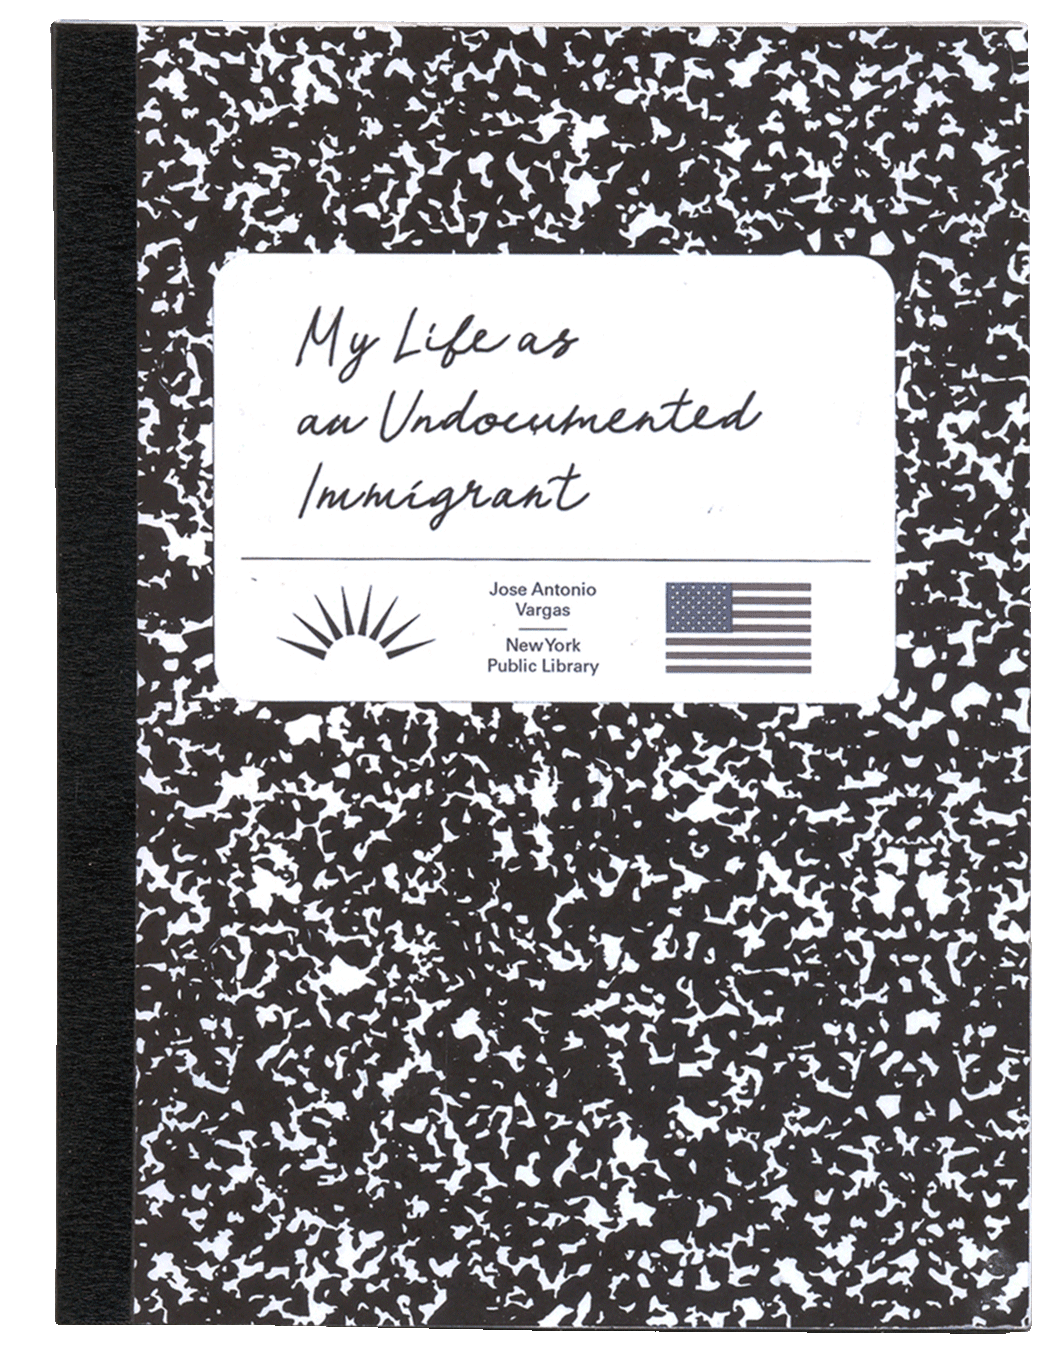 My Life as an Undocumented Immigrant